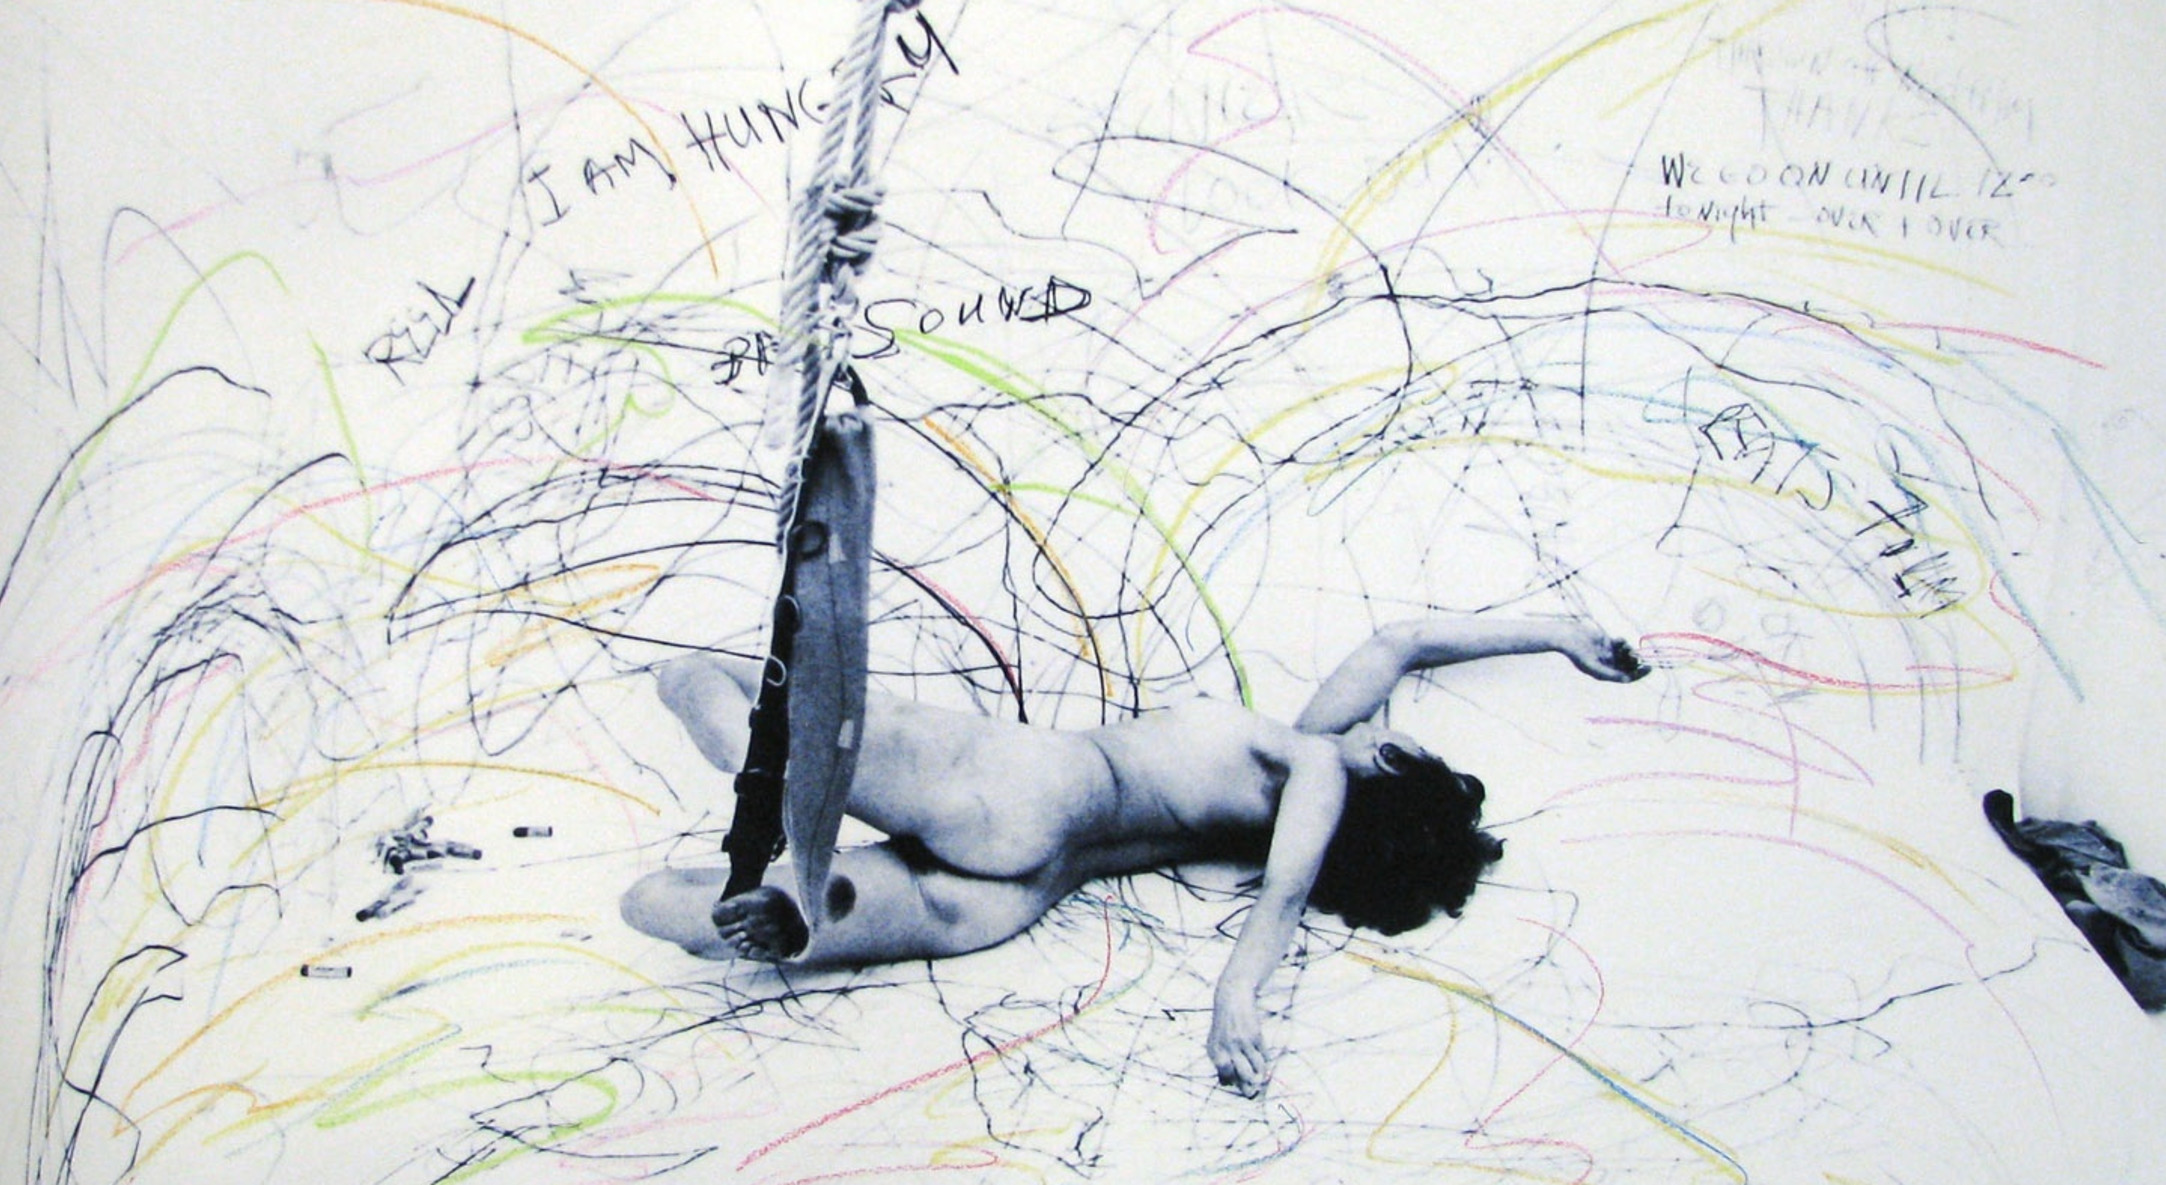 Carolee Schneemann, Up To and Including Her Limits-Blue, 1973-76/2011, Giclée print with hand drawing, Print: 91.4 x 124.5 cm, 36 x 49 in, Paper: 100.3 x 132.1 cm, 39 1/2 x 52 in